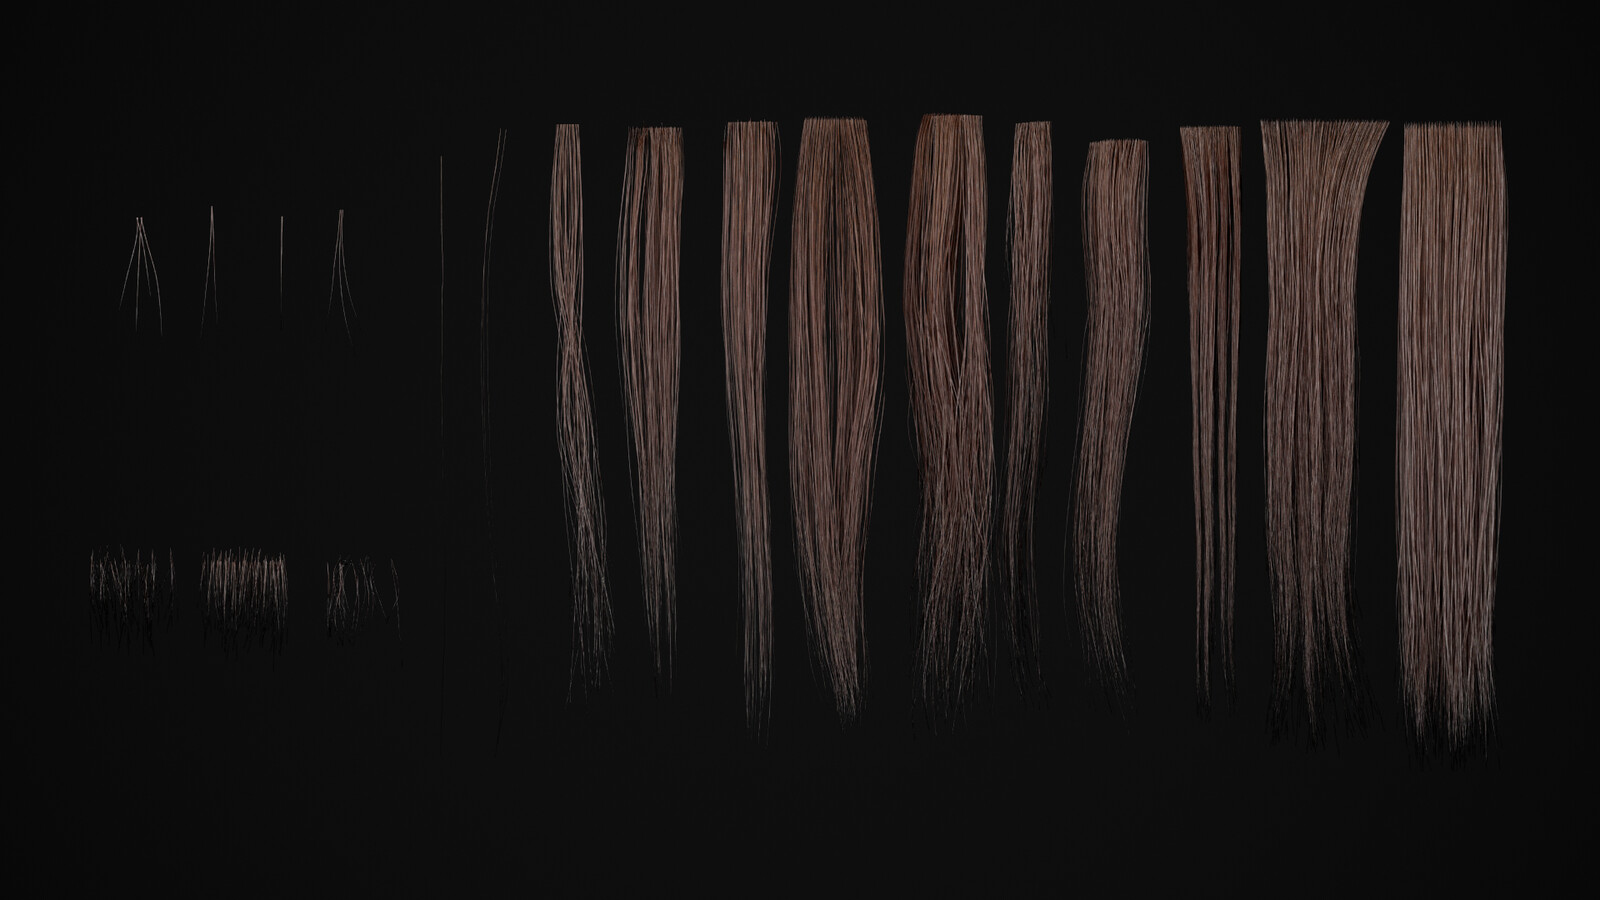 Hair cards used.